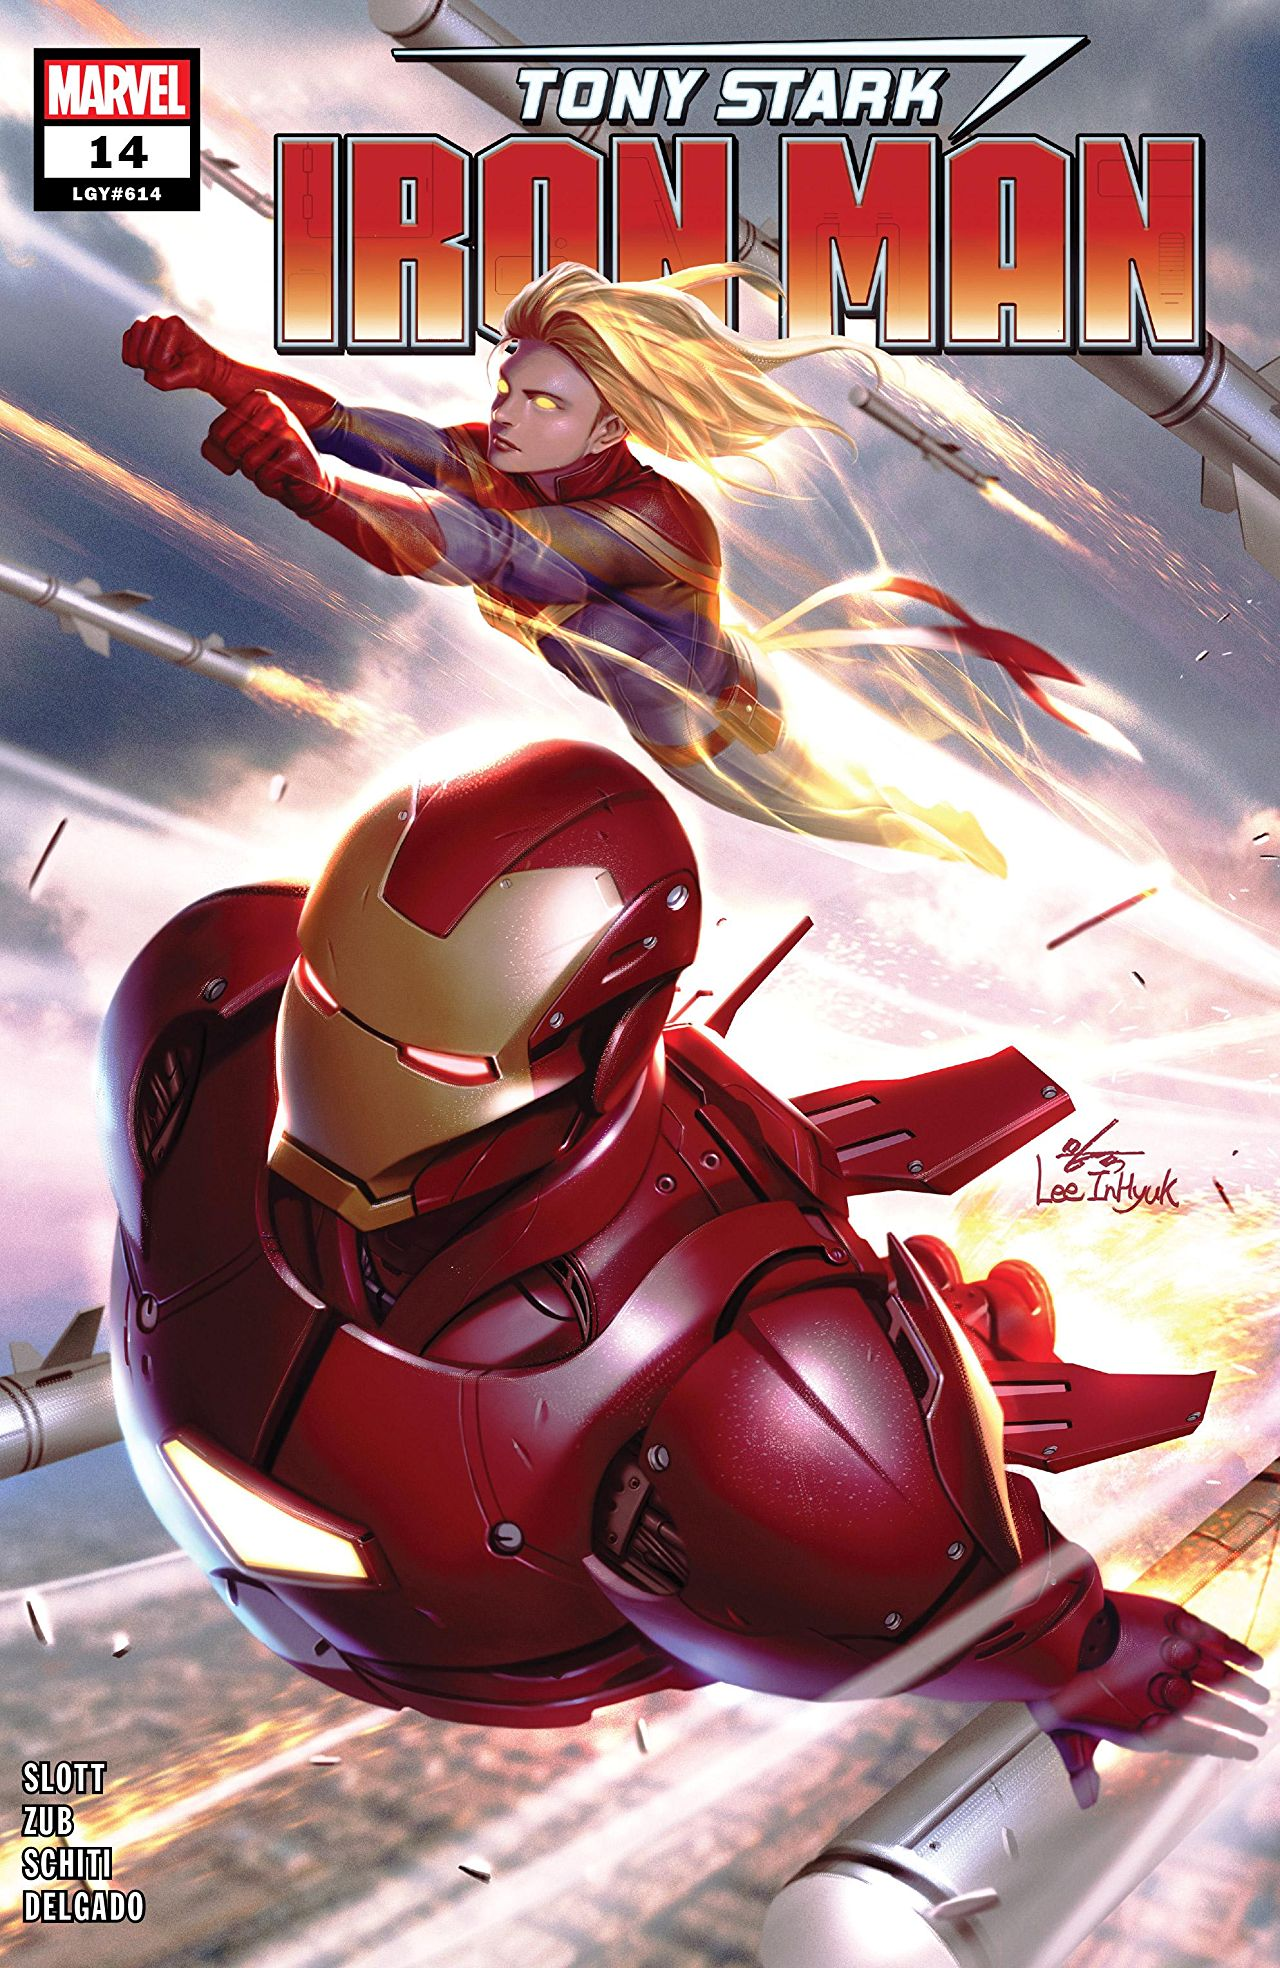 Tony Stark: Iron Man Vol 1 14